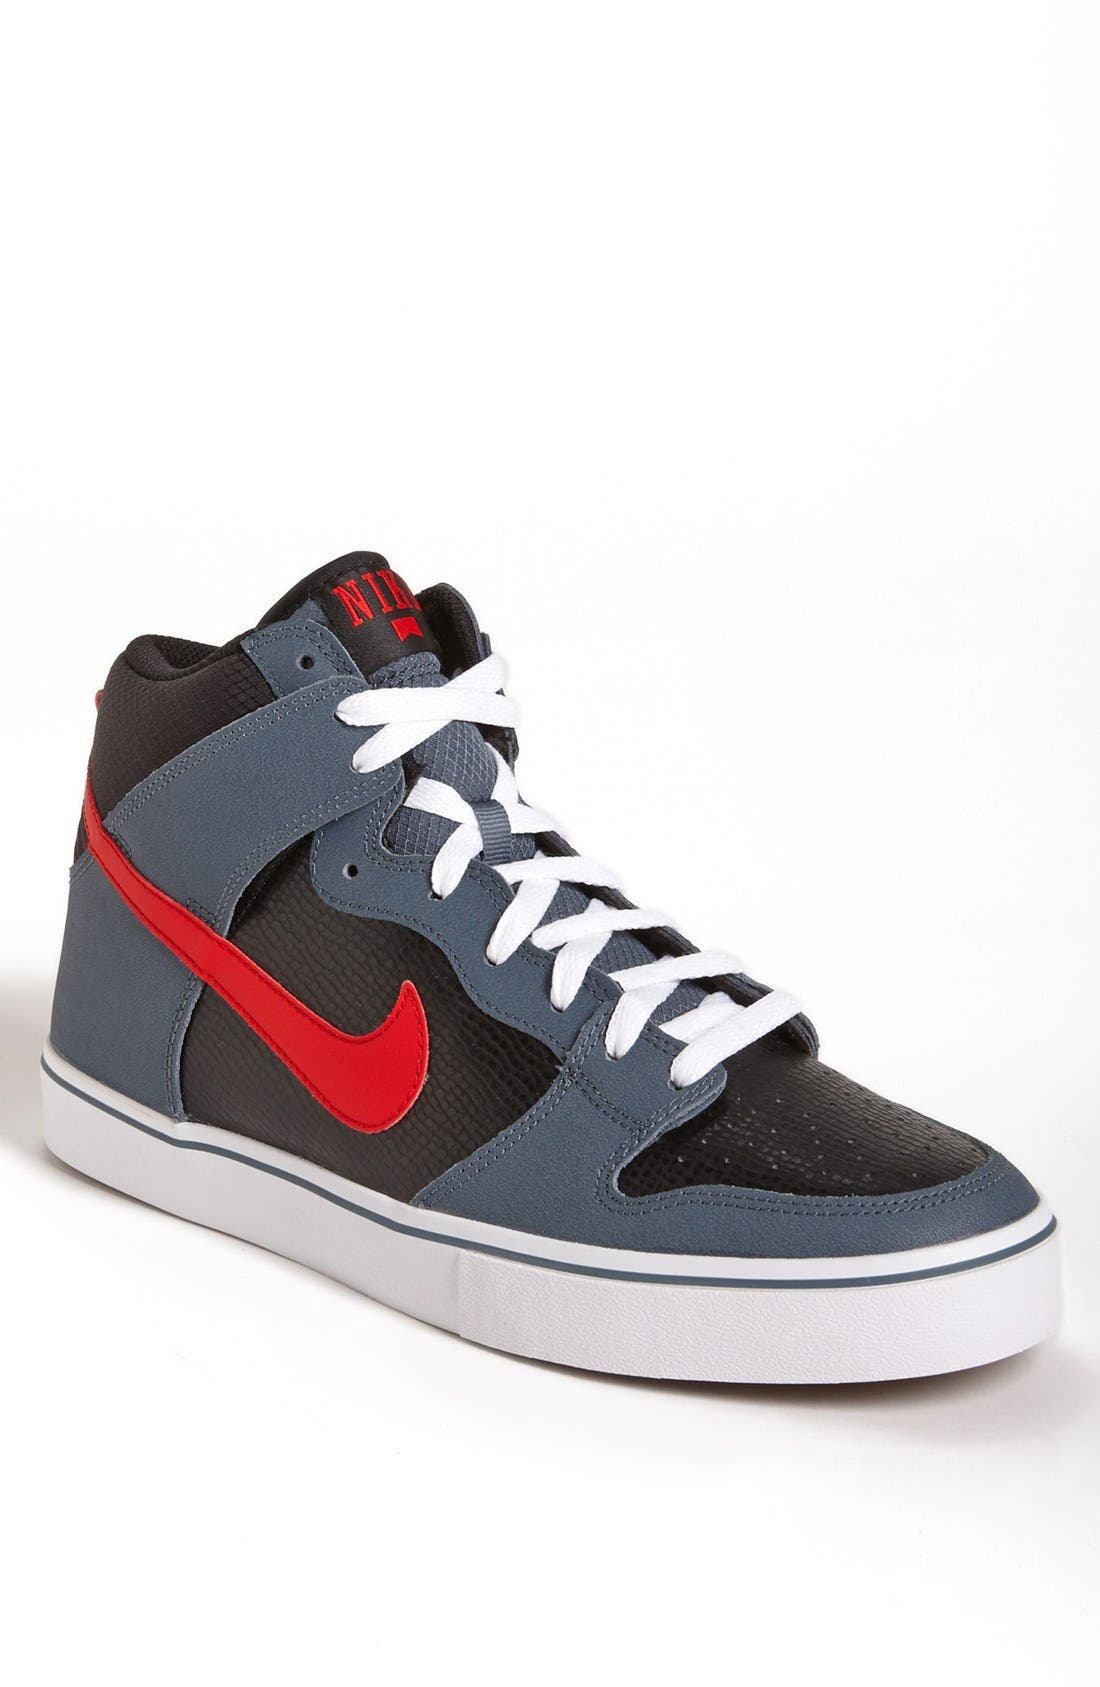 Main Image - Nike 'Dunk High LR' Sneaker (Men)